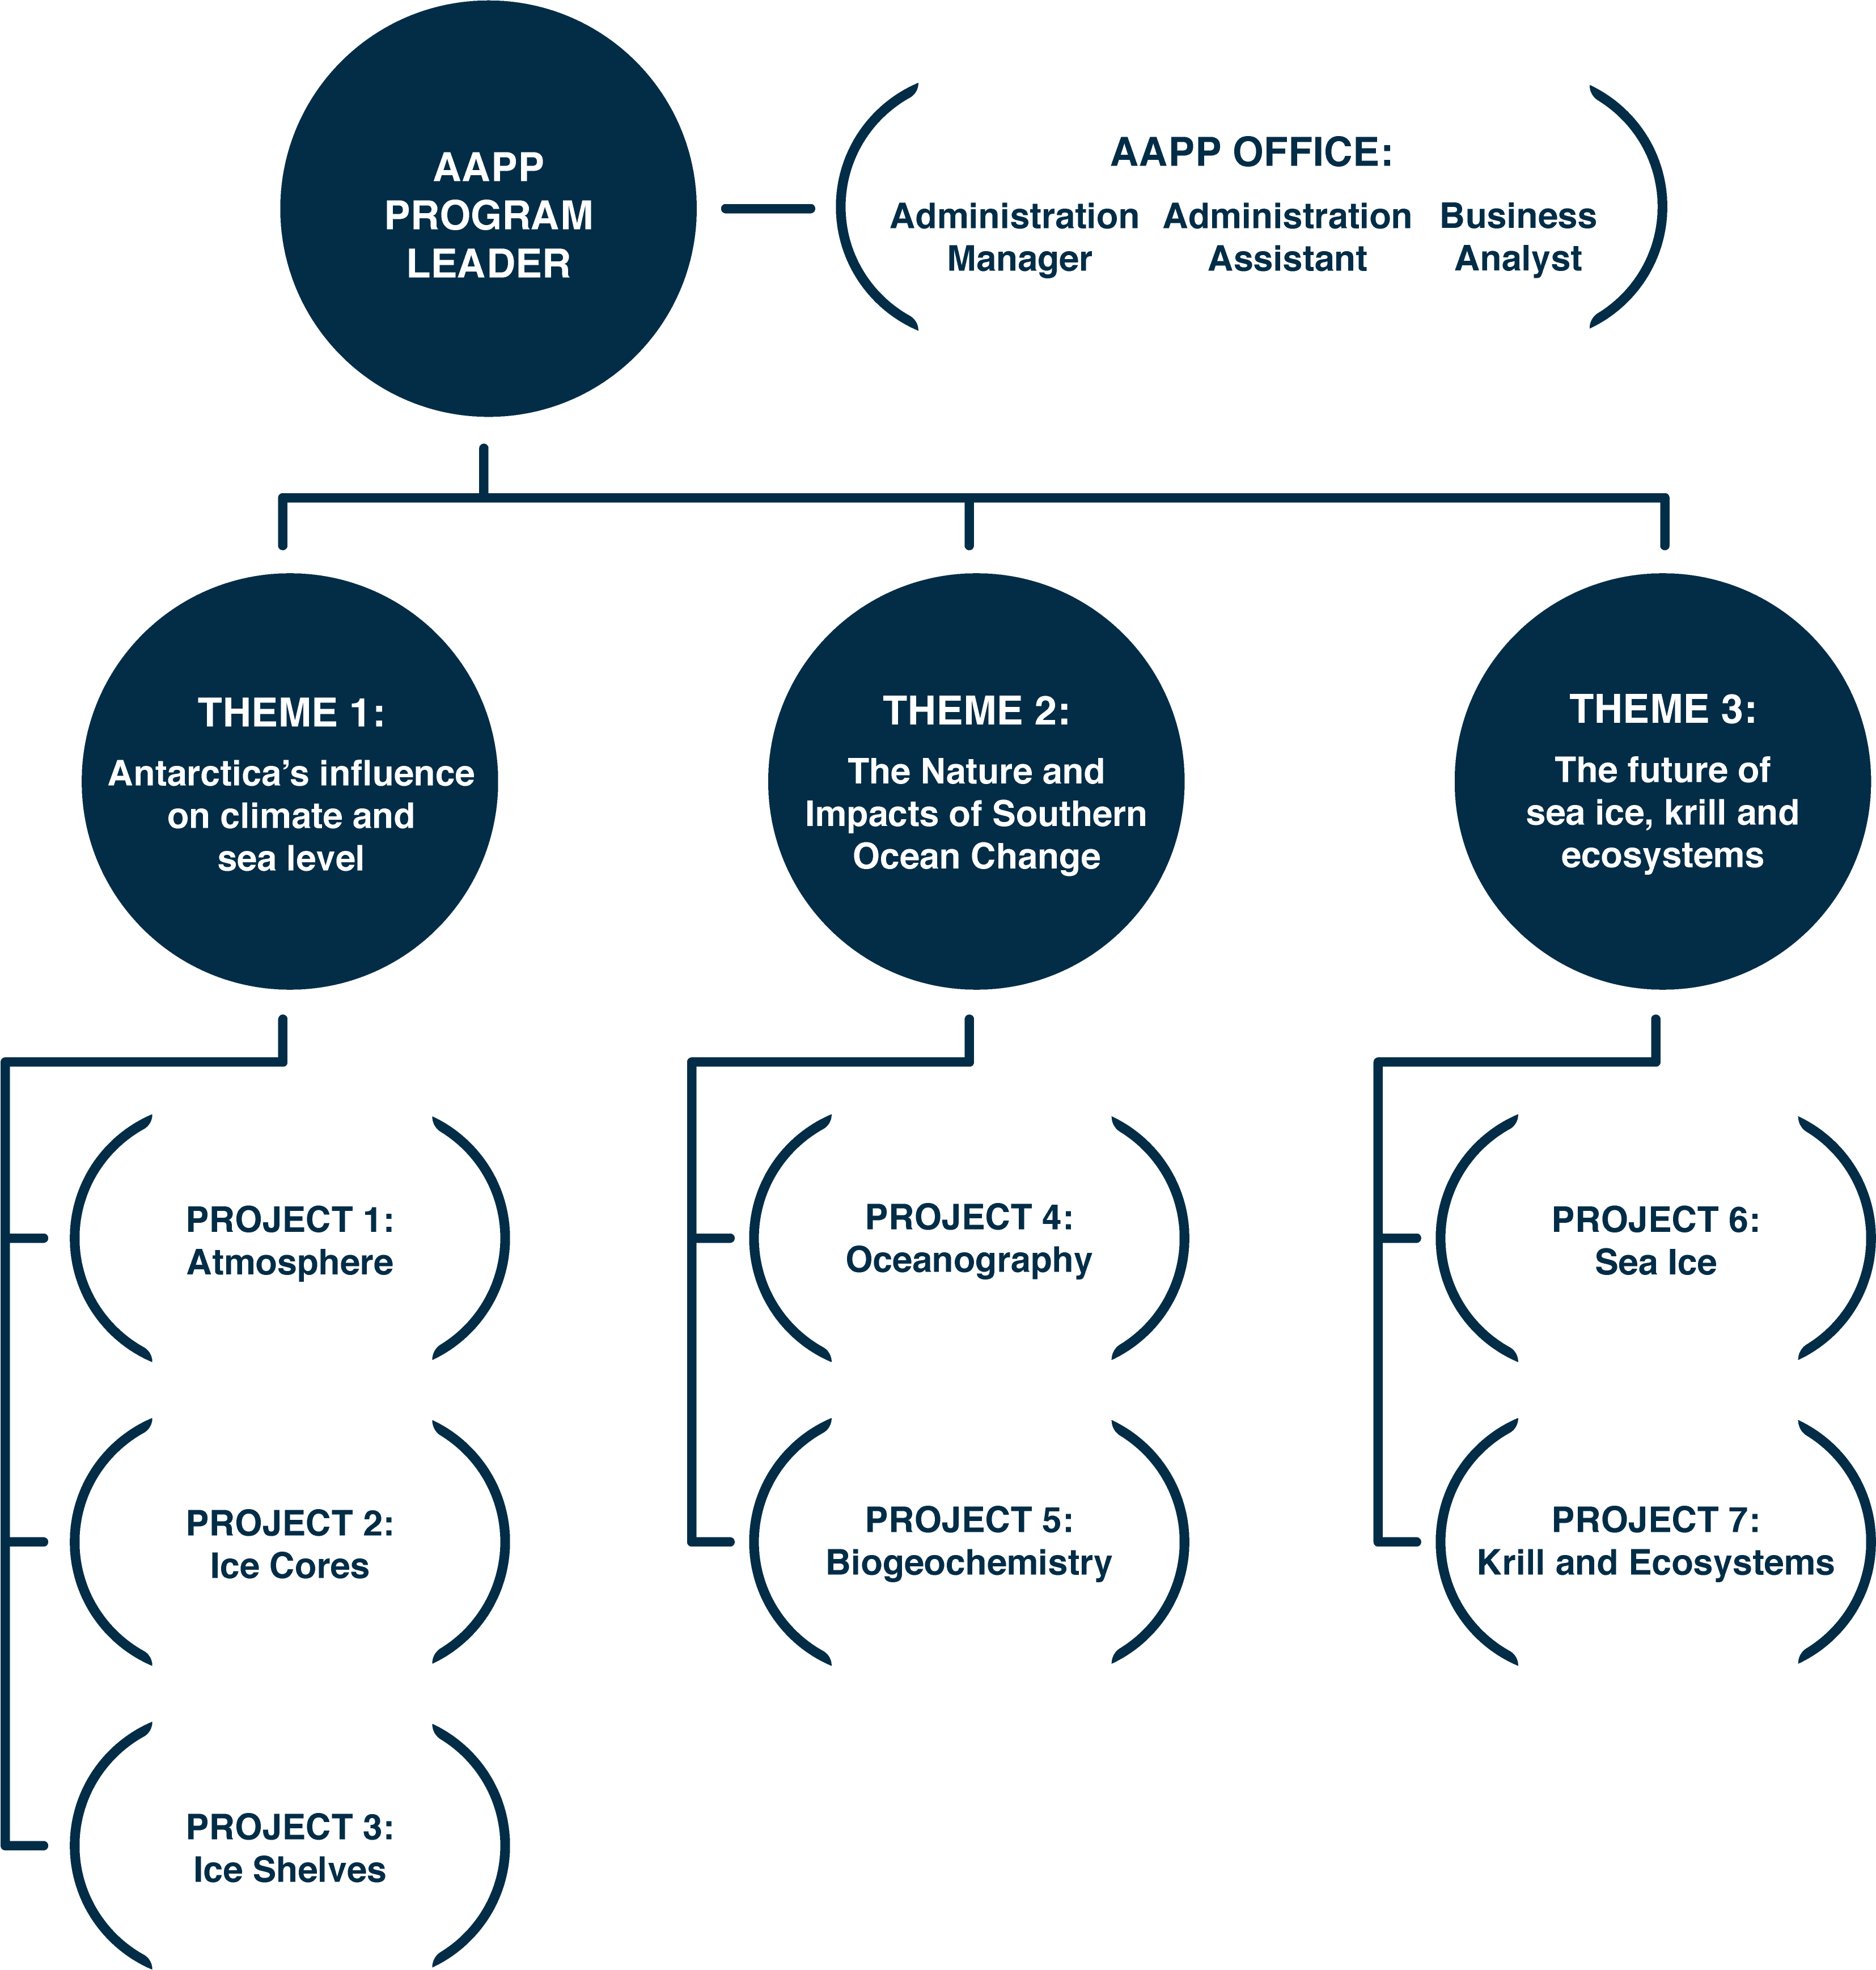 AAPP Org chart for website